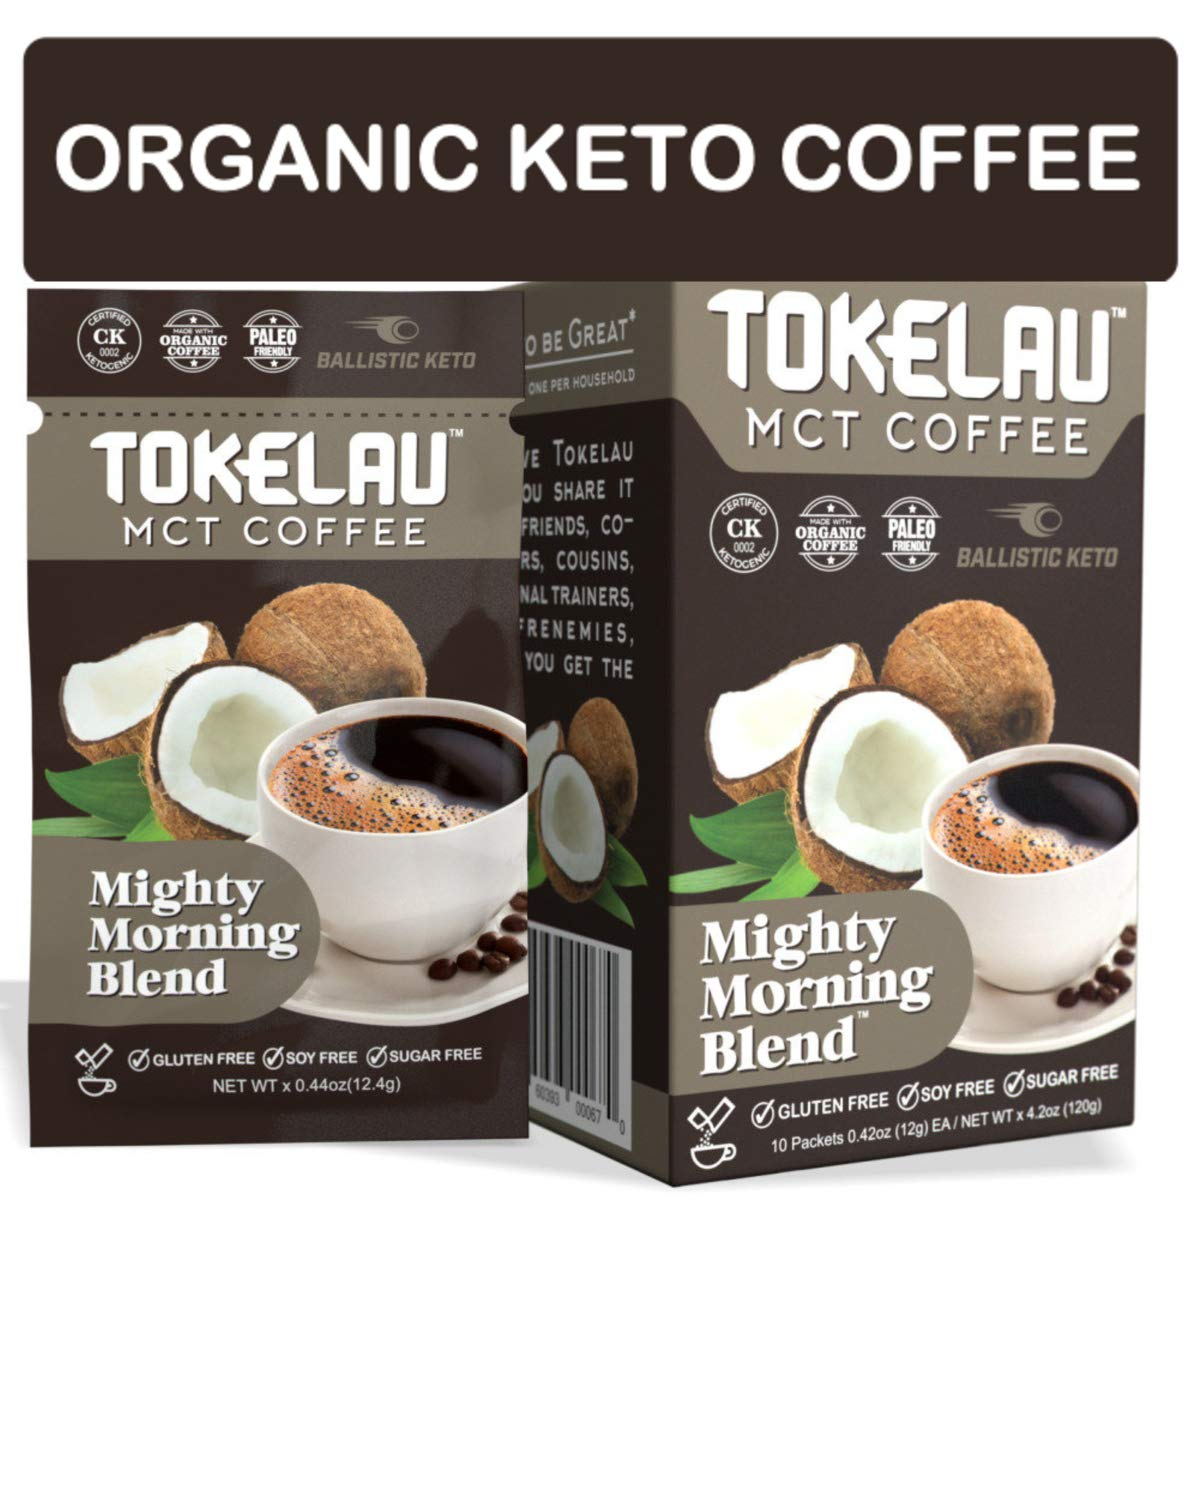 Tokelau Keto Coffee Packets with C8 MCT Oil Powder. Organic Keto Instant Coffee to Burn Fat for Fuel and be Amazed at How Fast It Works. Keto Coffee in Seconds to Fuel Your Day